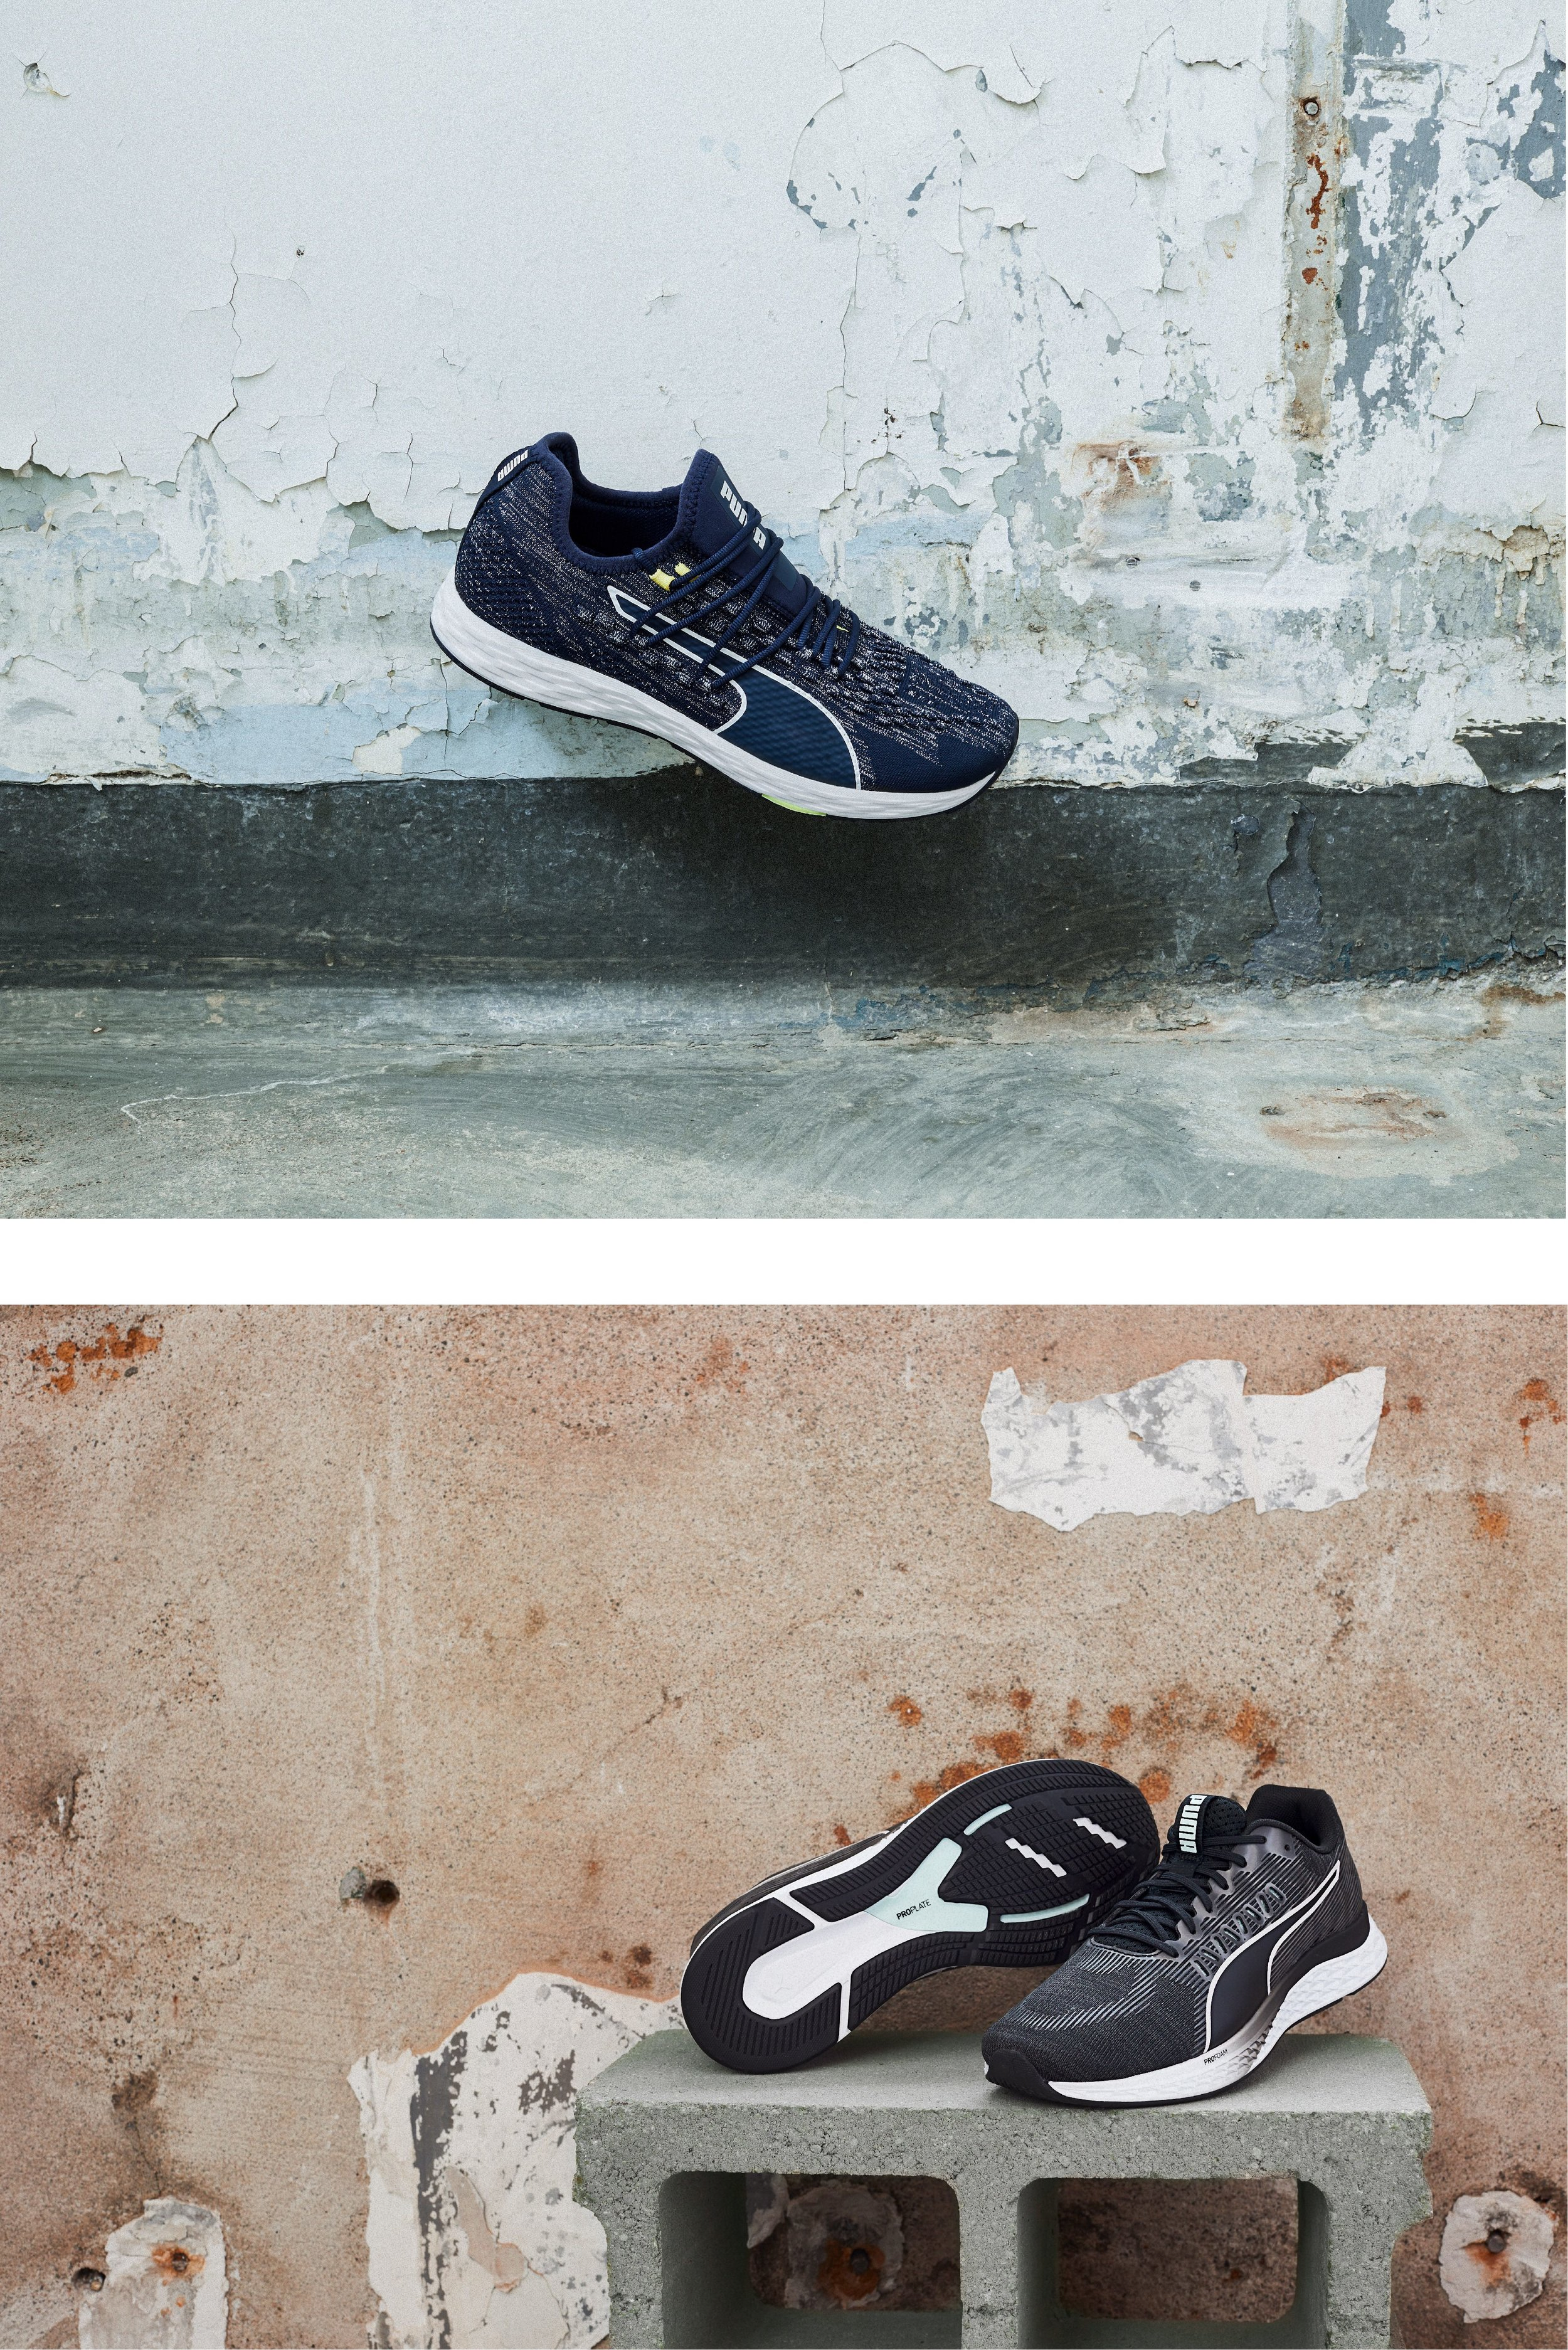 Puma styled product images | Latitude Creative | Styled by Emily Baynard and Photographed by Roo Way